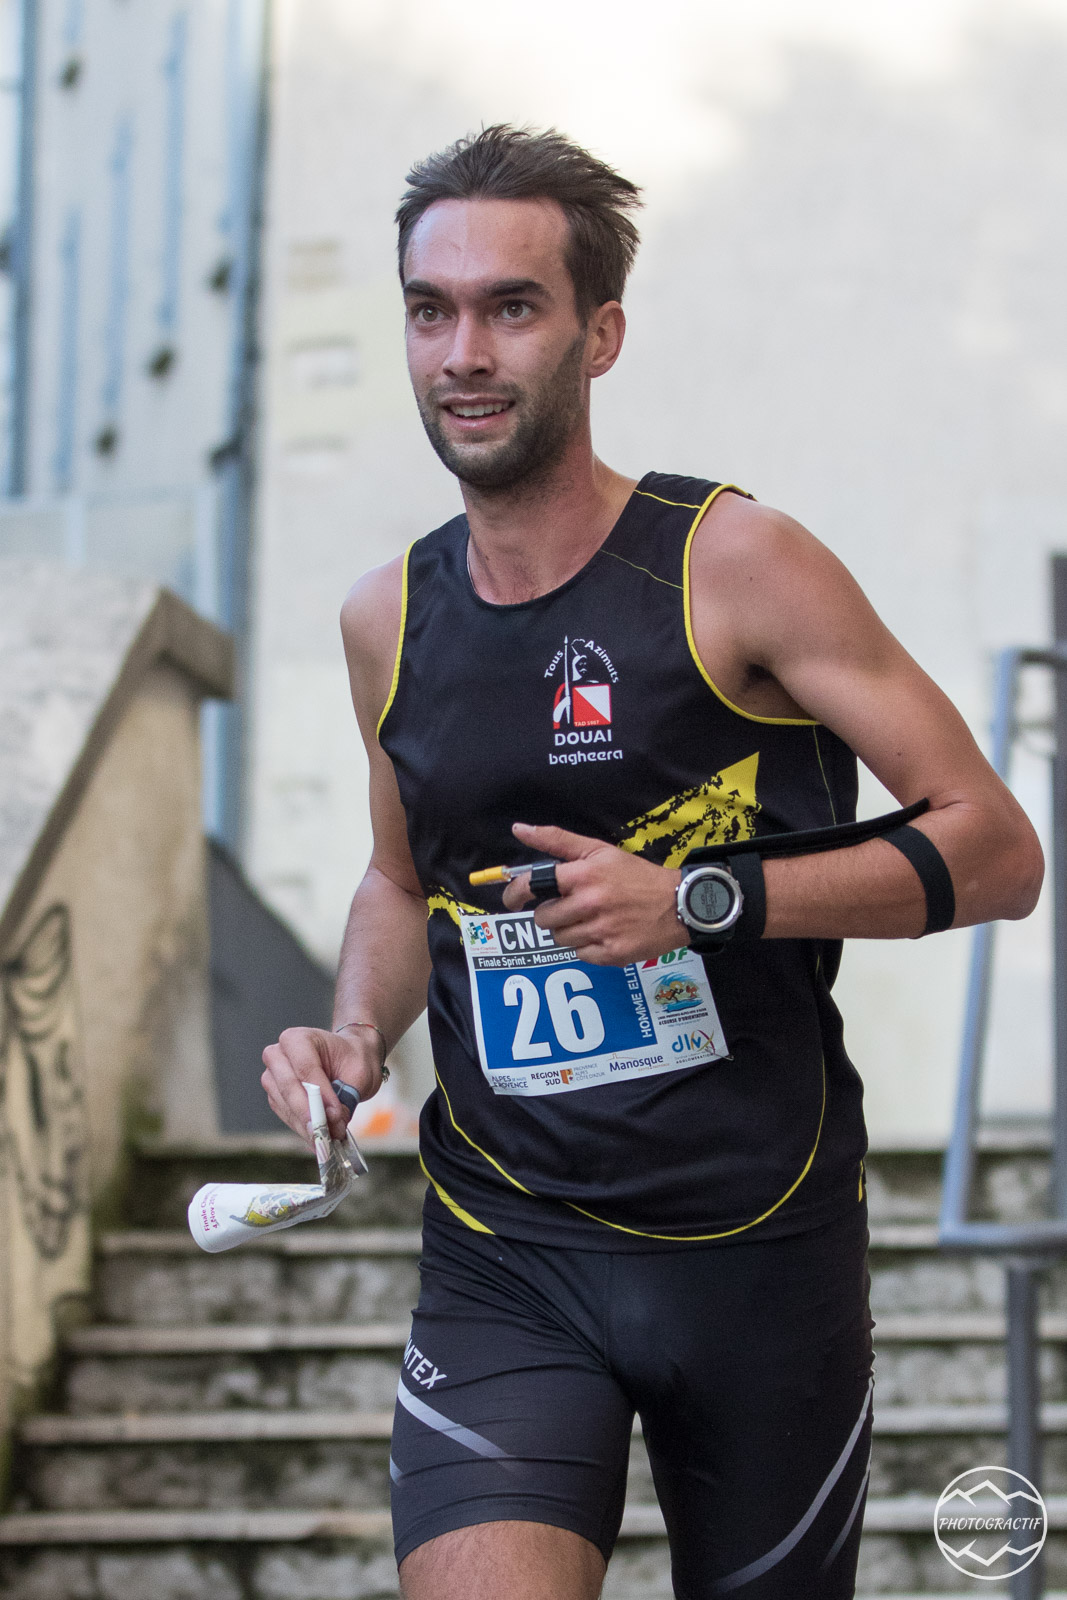 CDF Sprint CO Manosque 2018 (24)